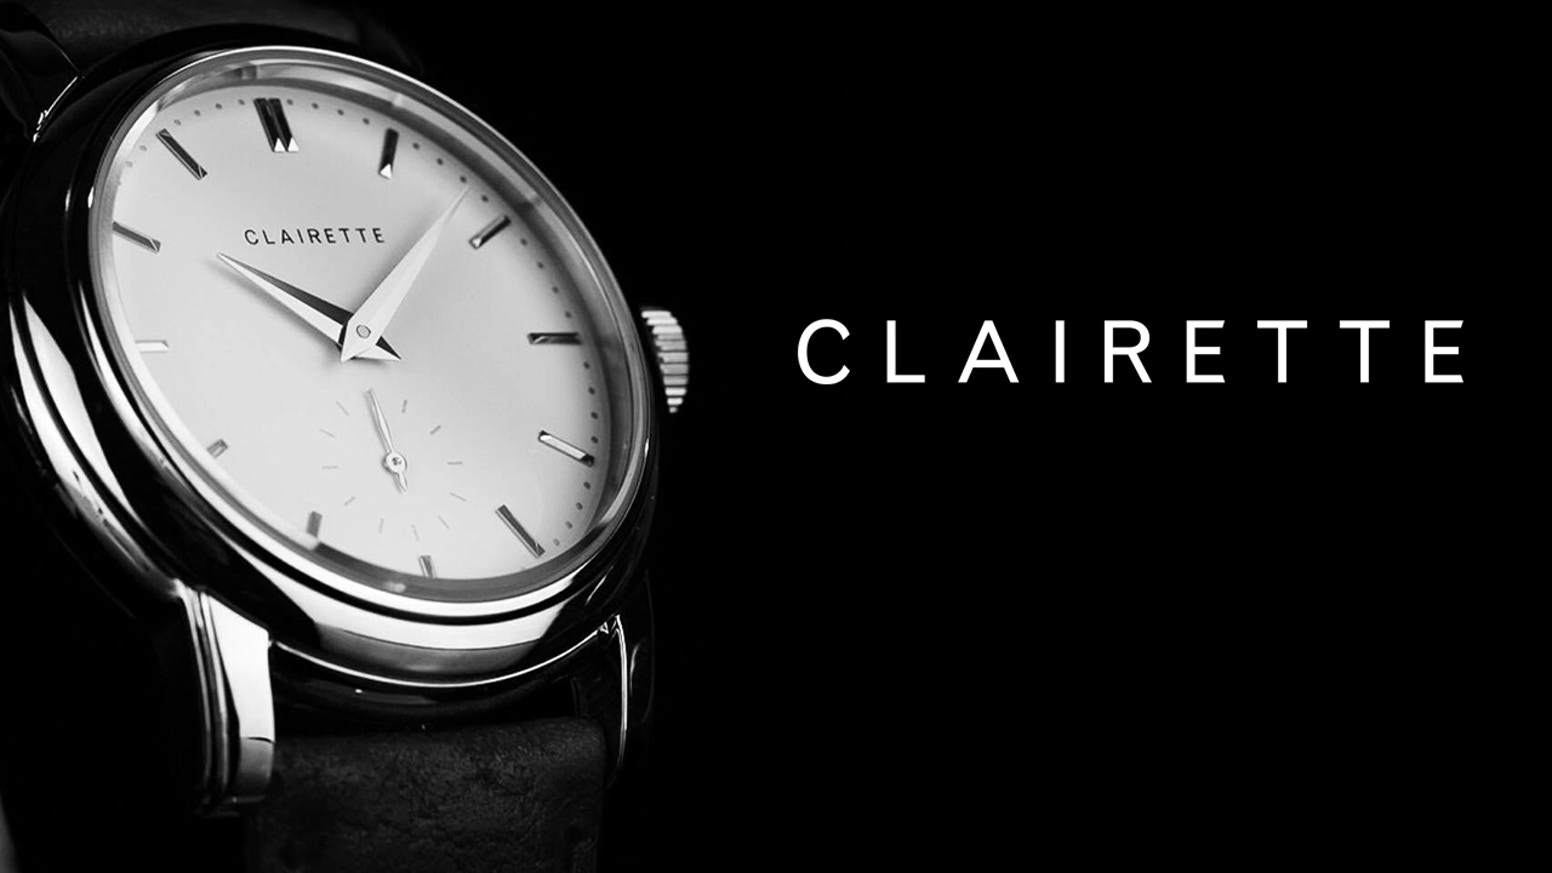 Elegant, high-quality watches for all wrist sizes. Including Tärnsjö leather strap, box, certificate and 5 years of warranty